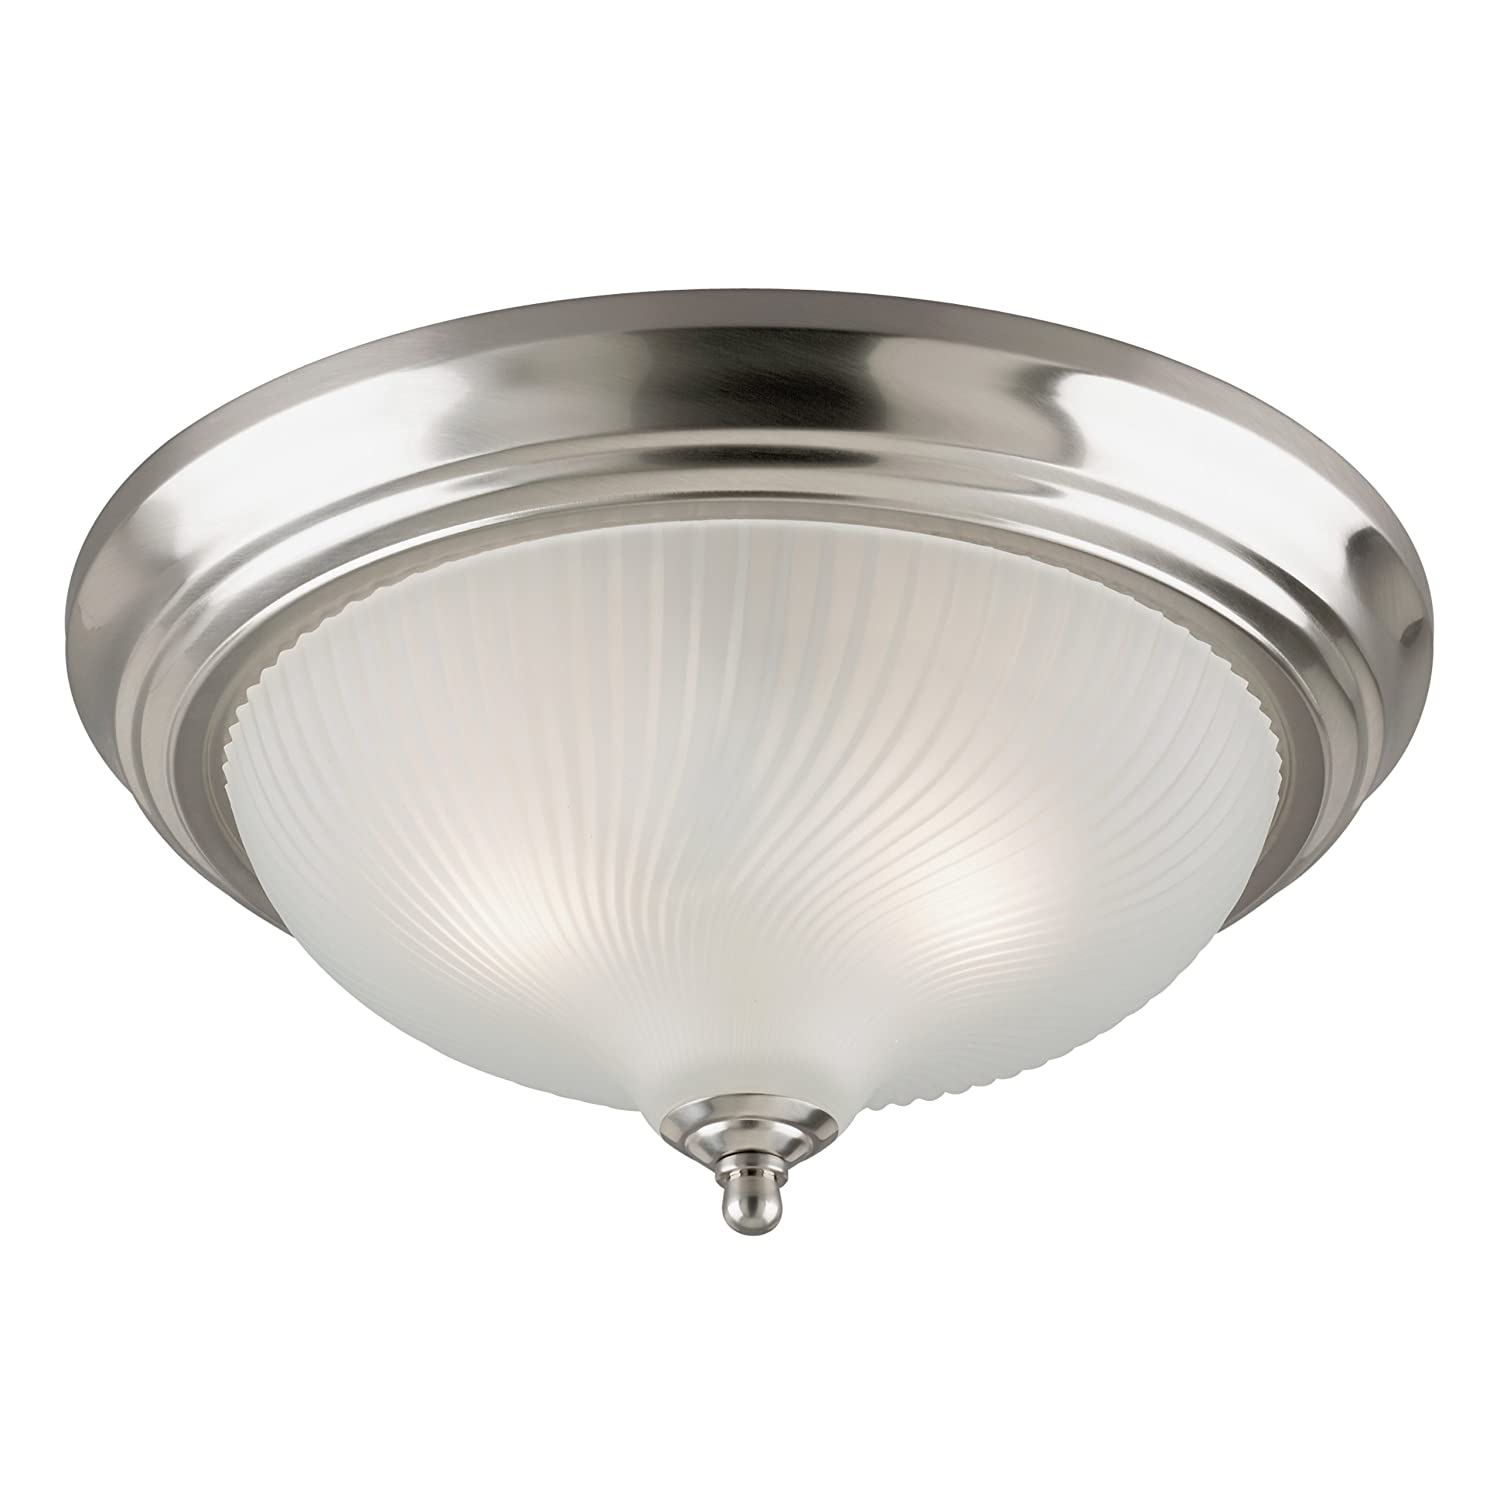 Westinghouse 6430600 Three-Light Flush-Mount Interior Ceiling Fixture, Brushed Nickel Finish with Frosted Swirl Glass